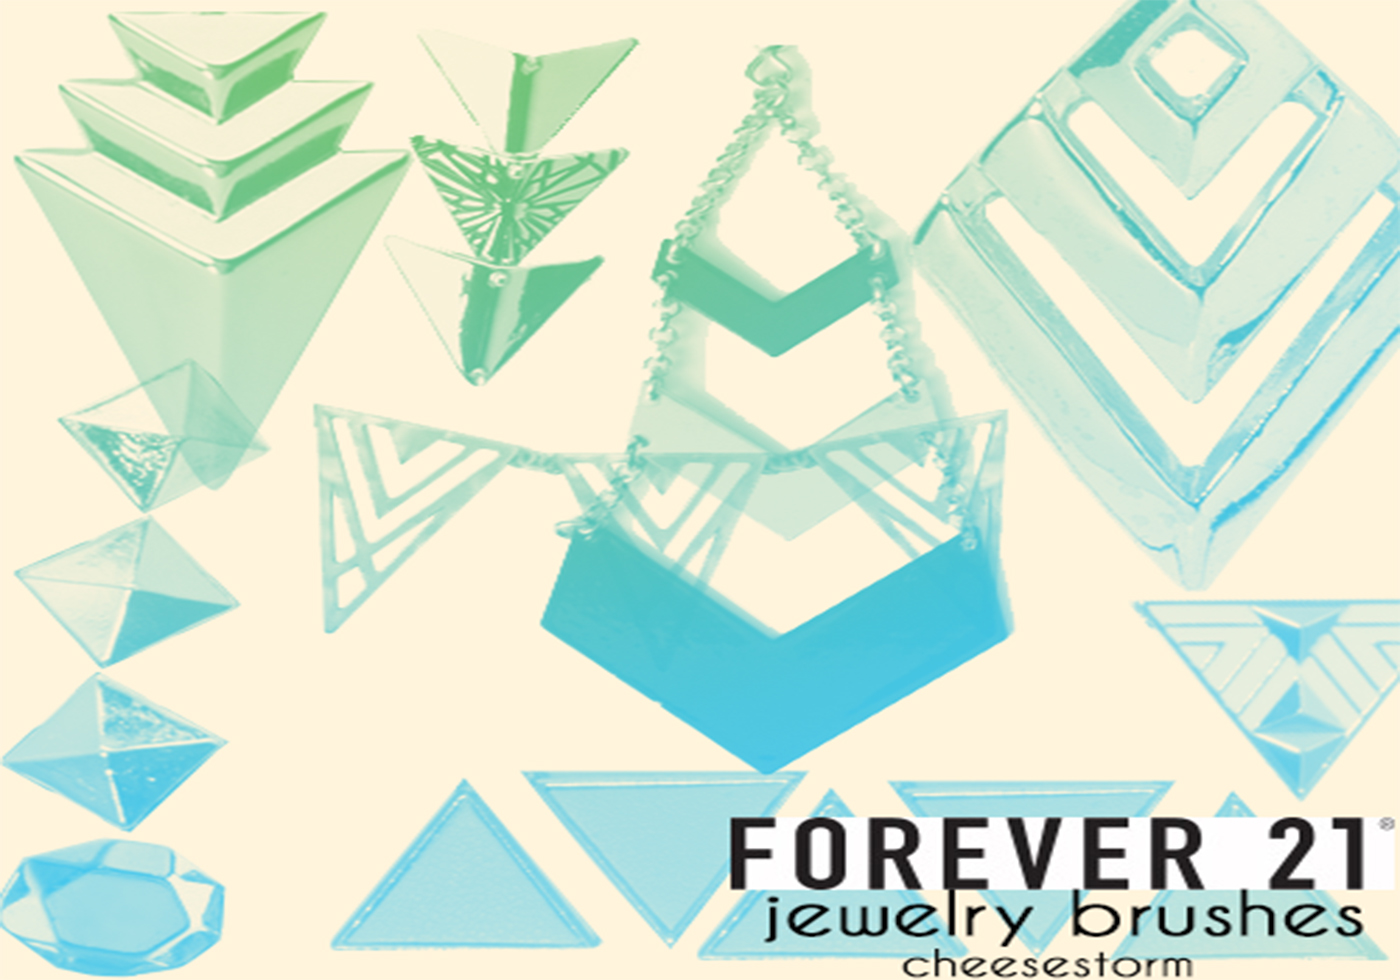 Geometric Jewelry Brushes | Free Photoshop Brushes at Brusheezy!